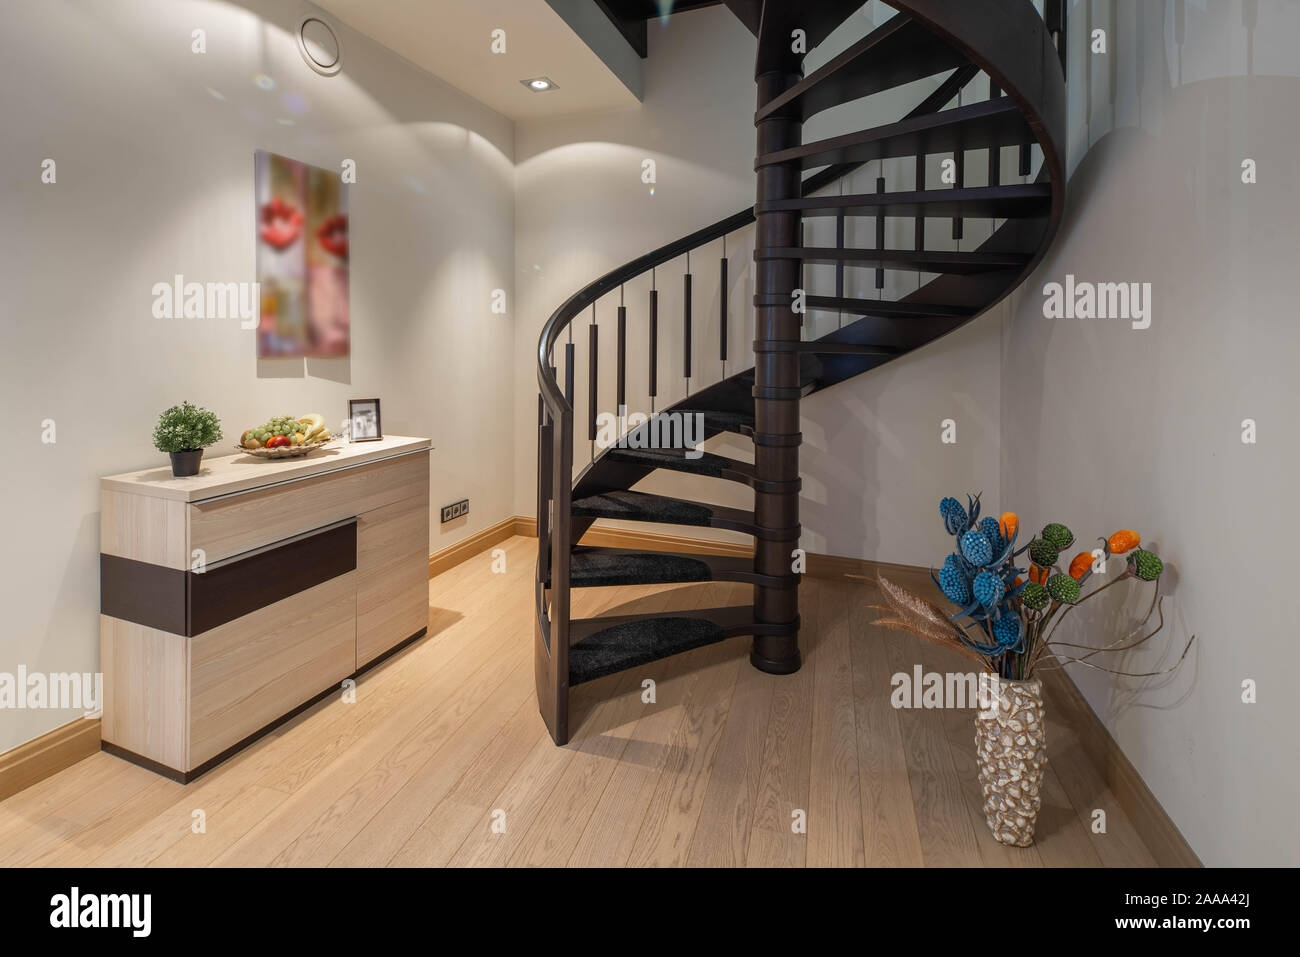 Modern Interior Of Studio Apartment Stairs To The Second Floor   Stairs To Second Floor Design   Bathroom Next   Space Saving   Square Shaped   Kitchen   Stairway